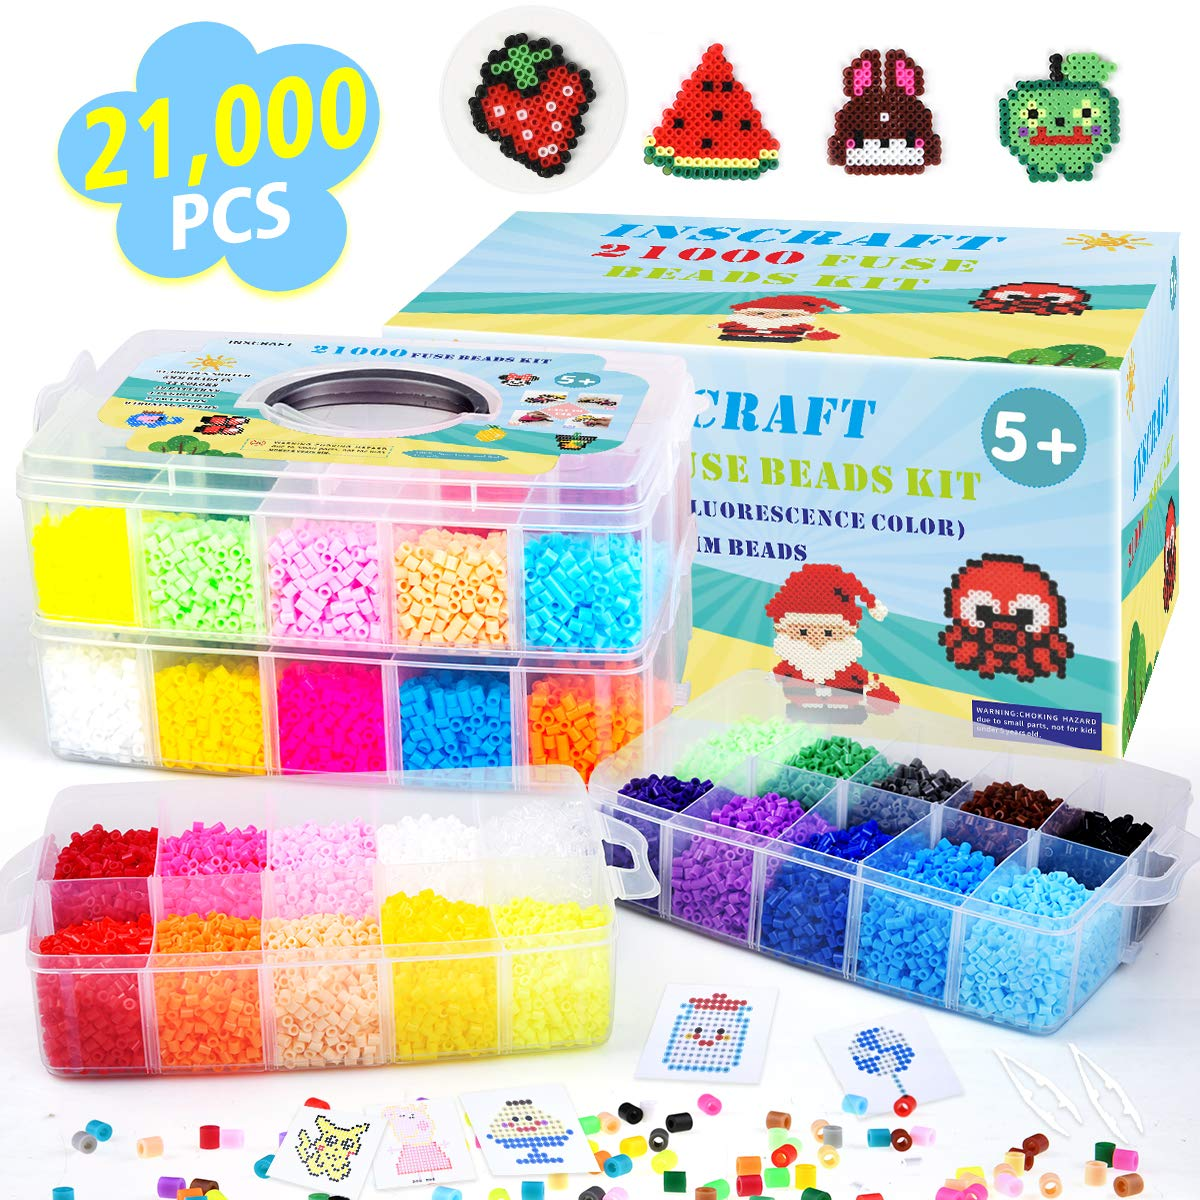 Fuse Beads, 21,000 pcs Fuse Beads Kit 22 Colors 5MM for Kids, Including 8 Ironing Paper,48 Patterns, 4 Pegboards, Tweezers, Perler Beads Compatible Kit by INSCRAFT by Inscraft